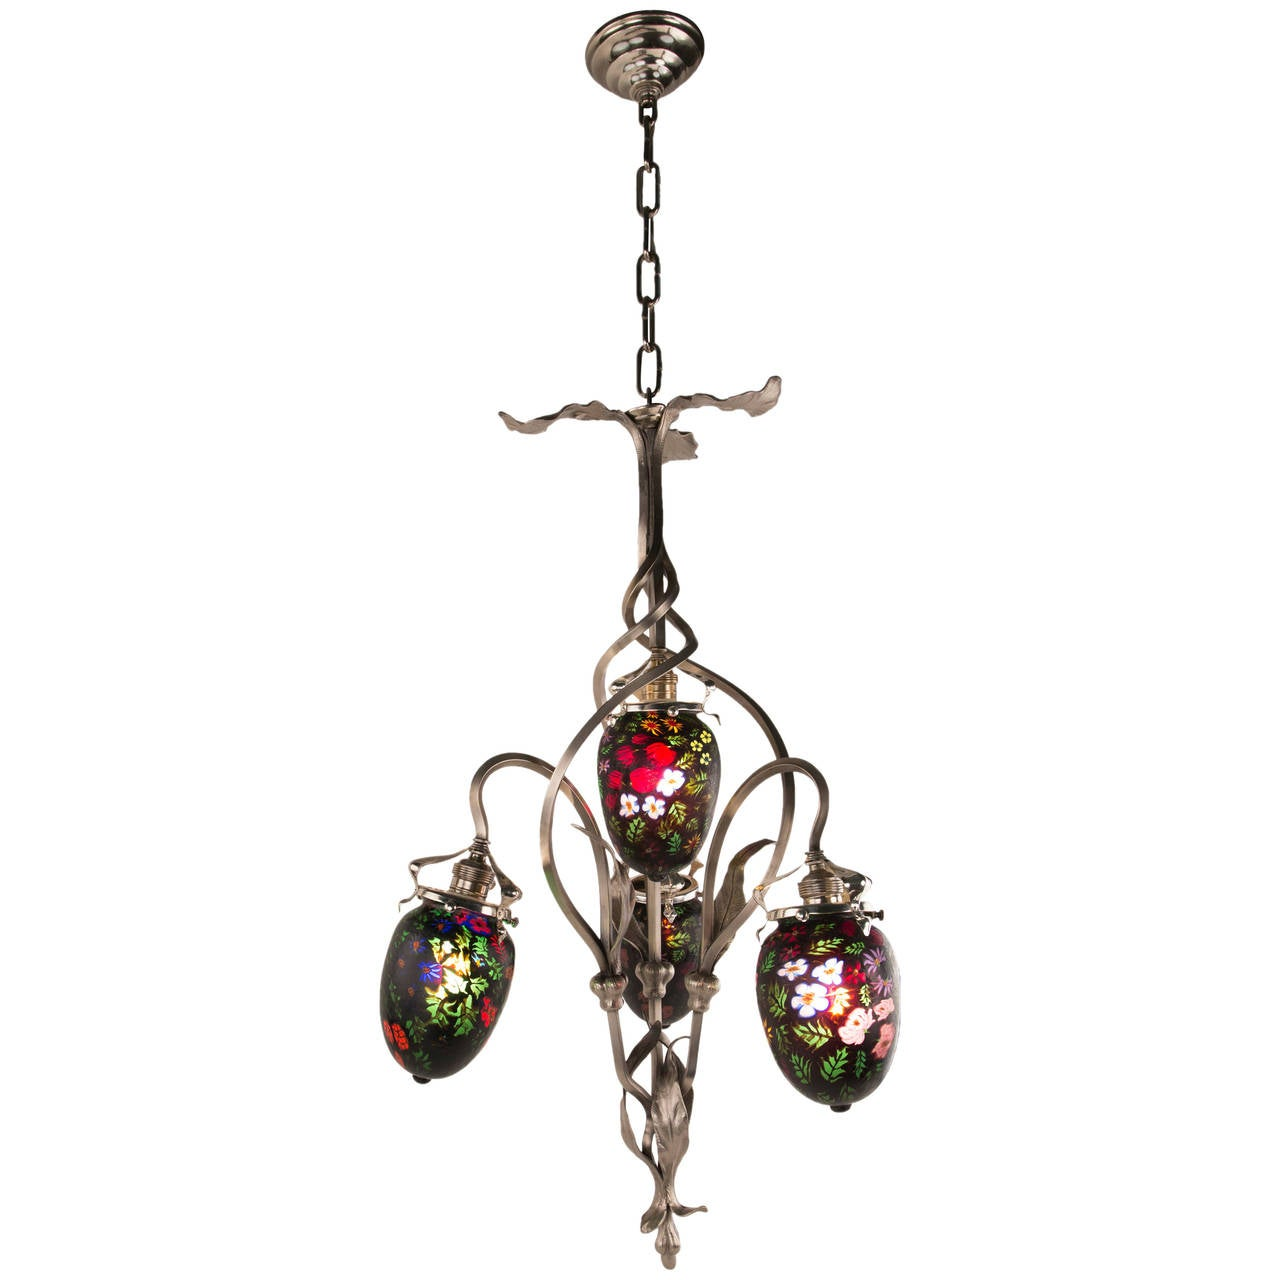 Art Nouveau Chandelier with Fratelli & Toso Glass Shades